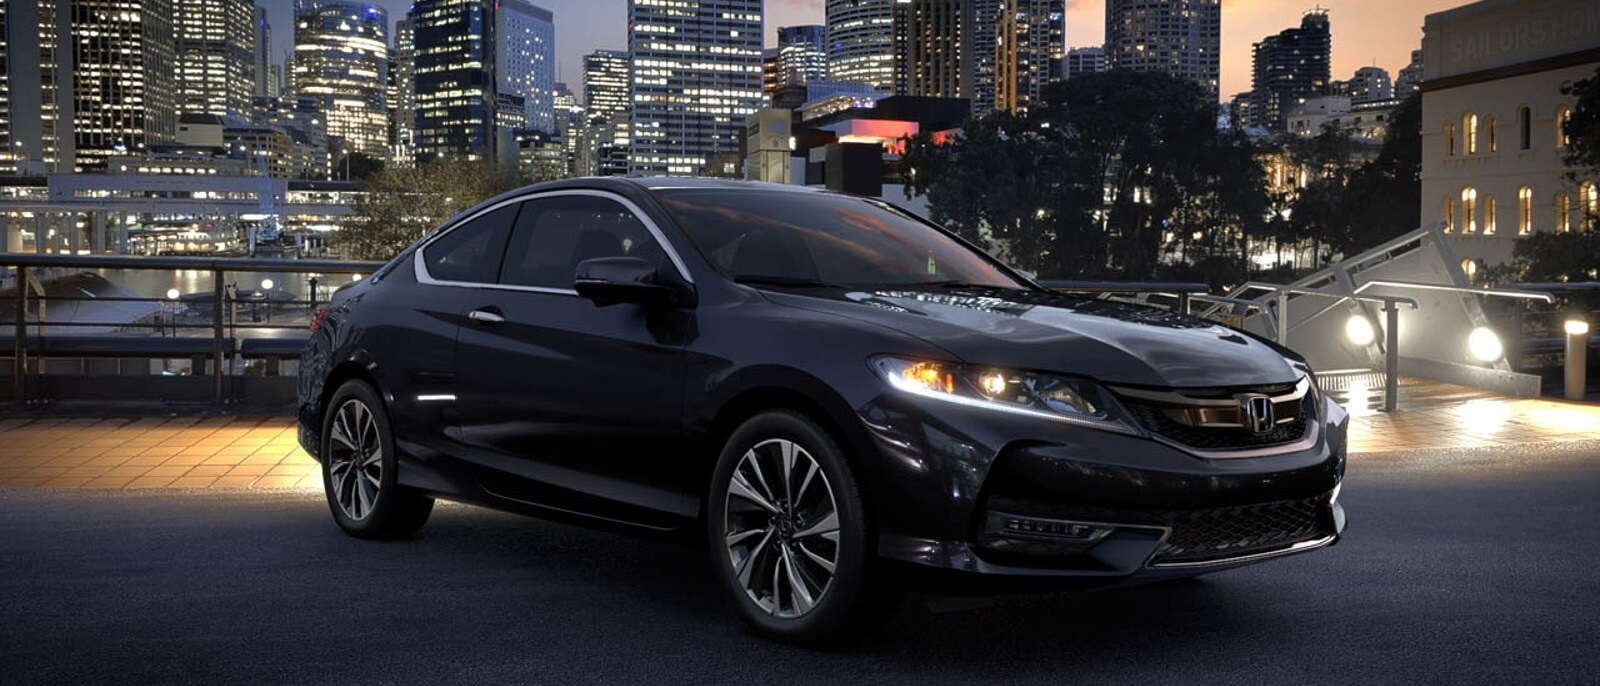 2016 Honda Accord Coupe in the city